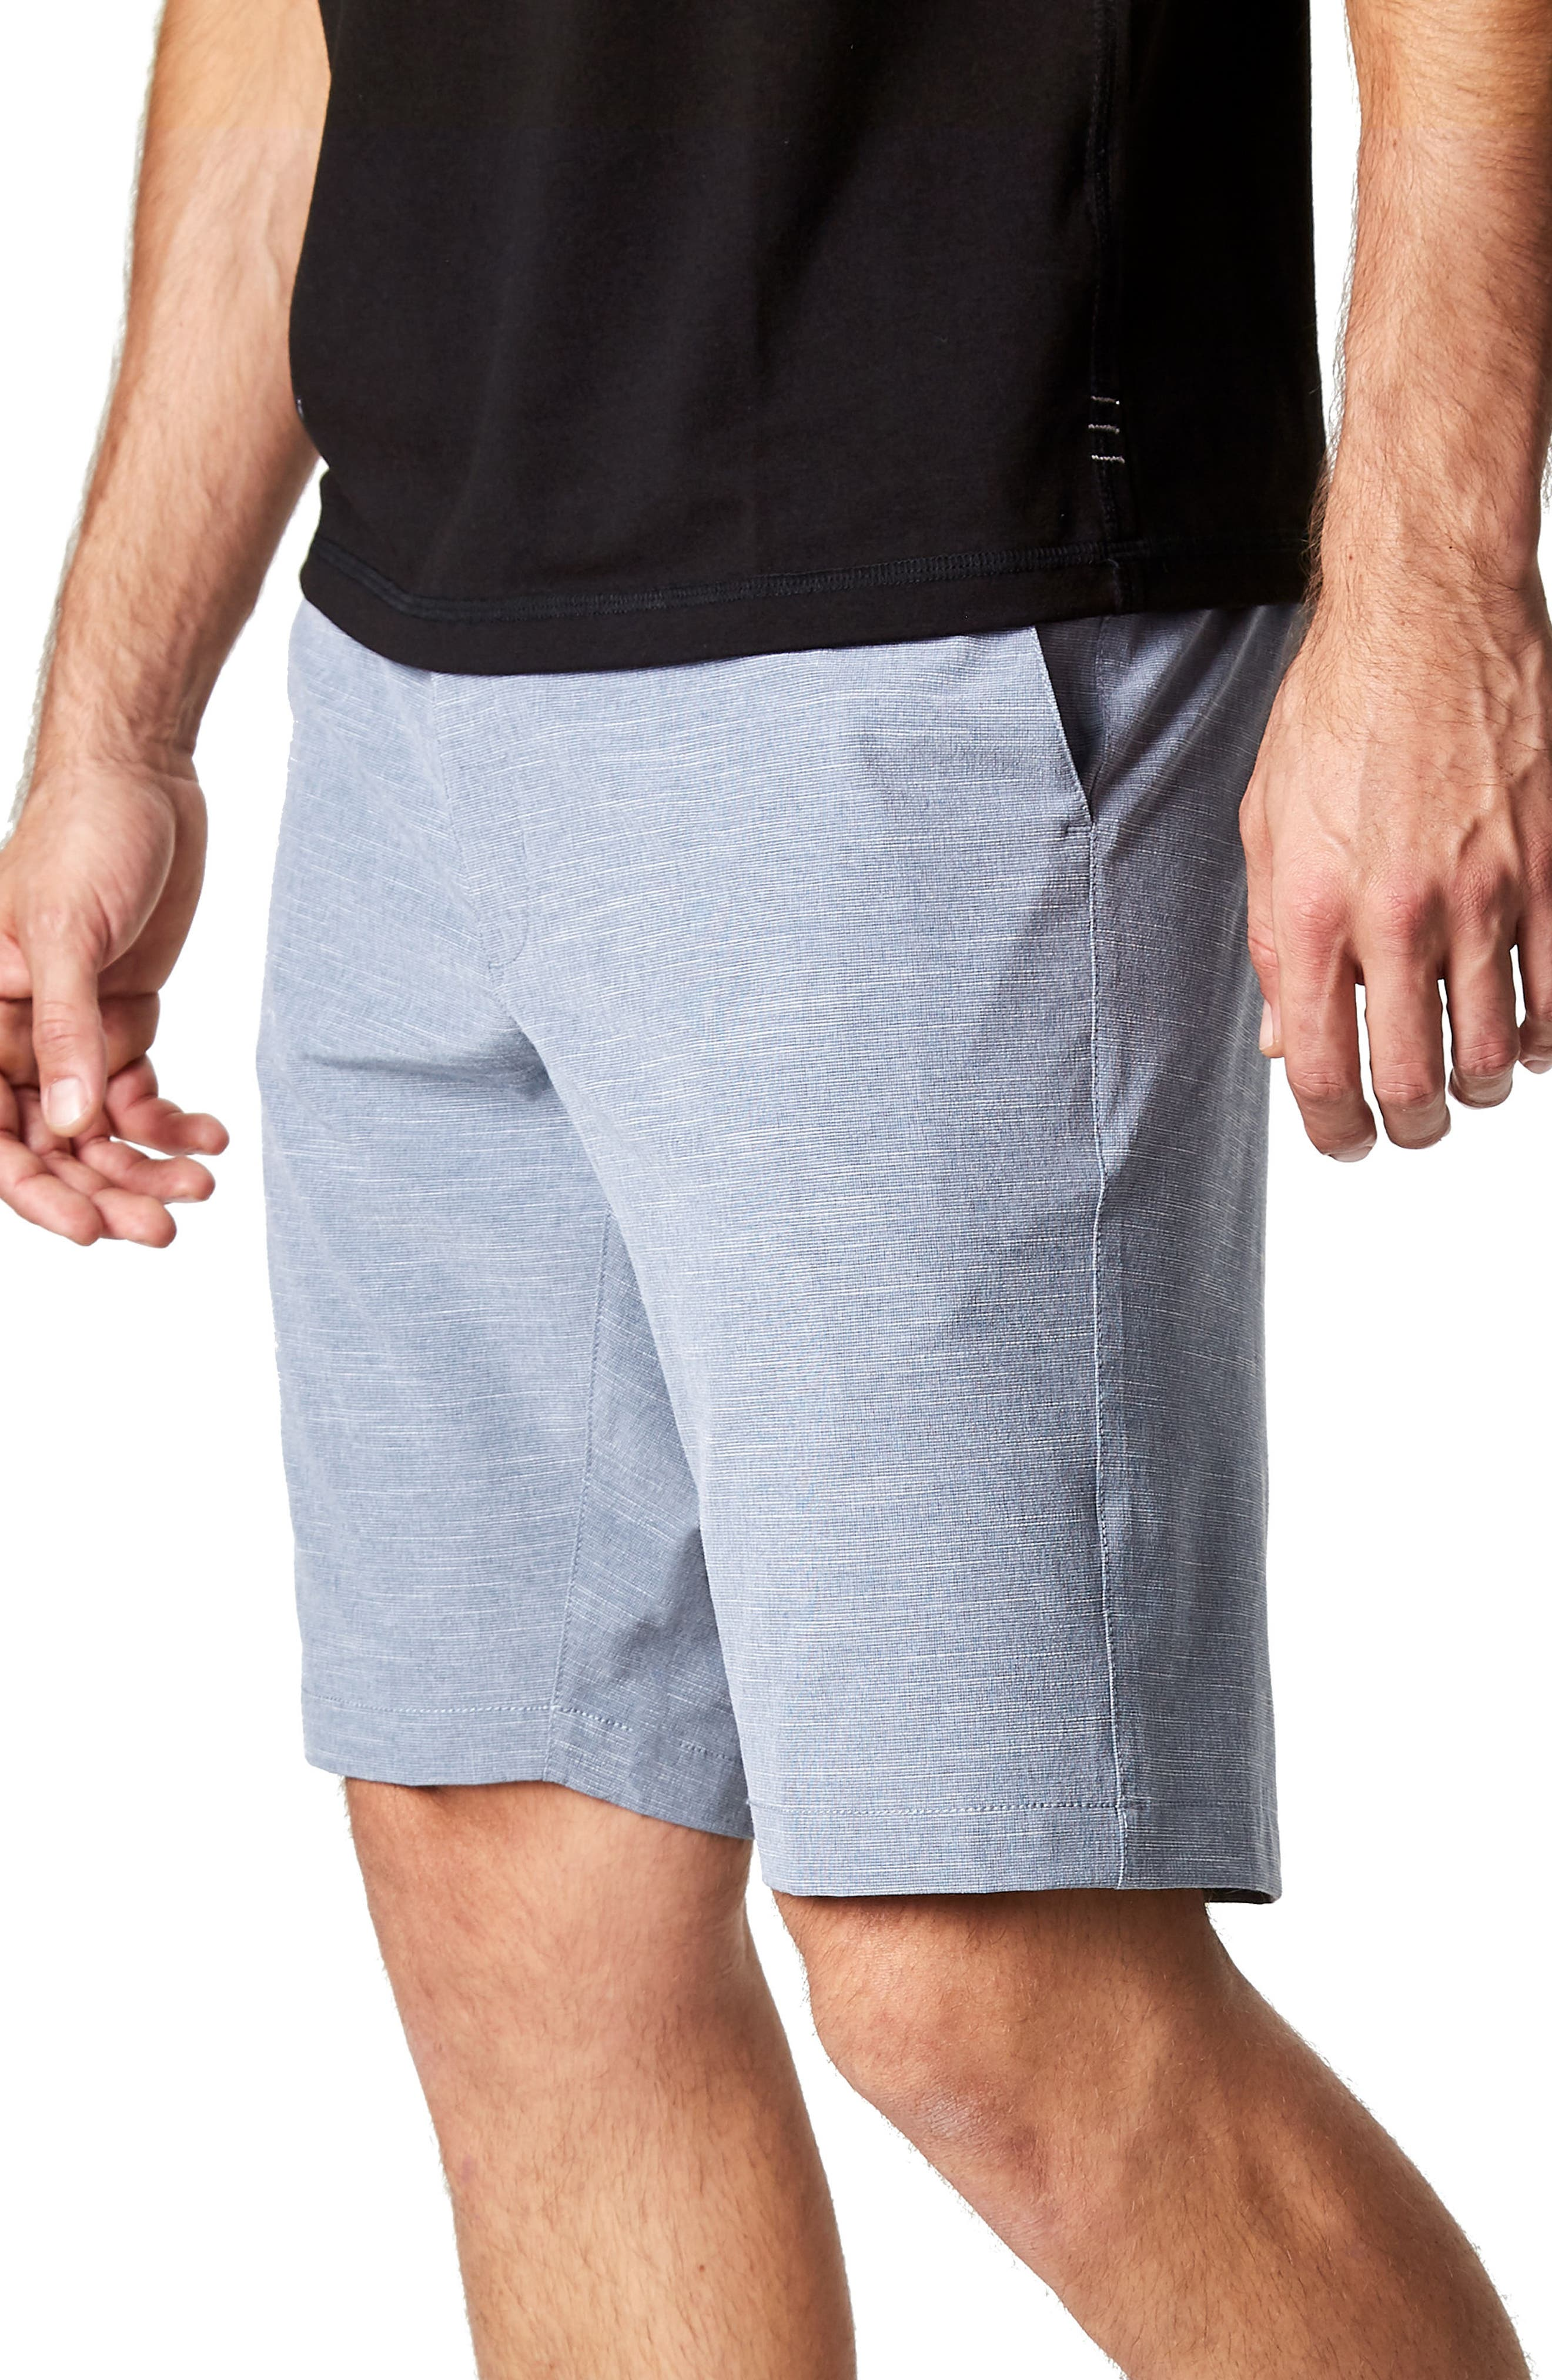 Existence Stretch Shorts,                             Alternate thumbnail 3, color,                             Slate